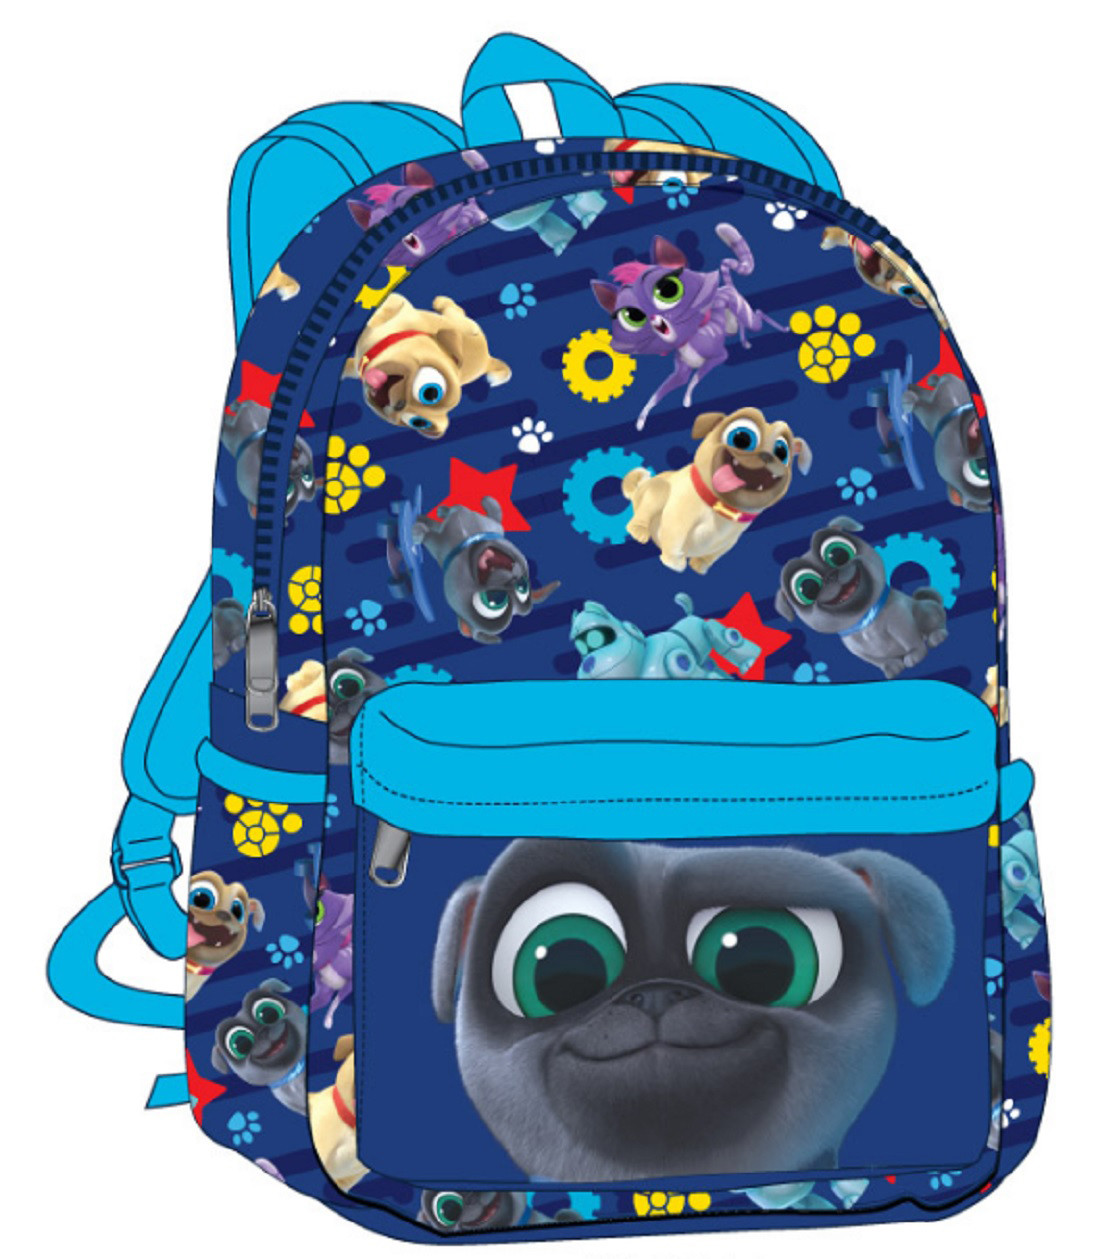 Backpack - Puppy Dog Pals - Large 16 Inch - Bingo